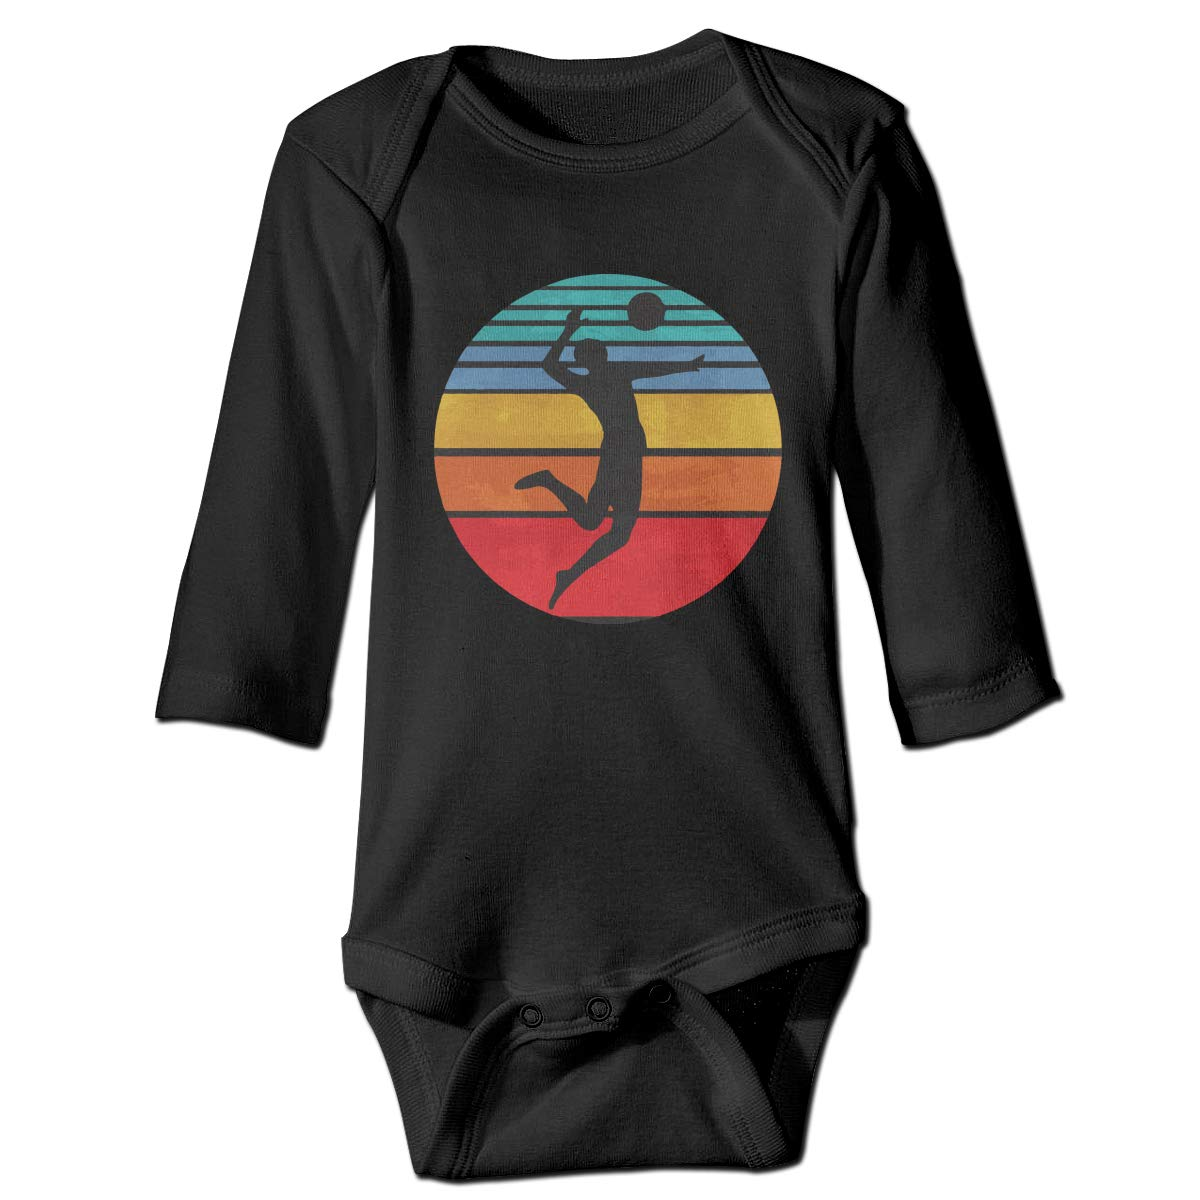 CZDedgQ99 Baby Boys Volleyball Long Sleeve Climbing Clothes Playsuit Suit 6-24 Months